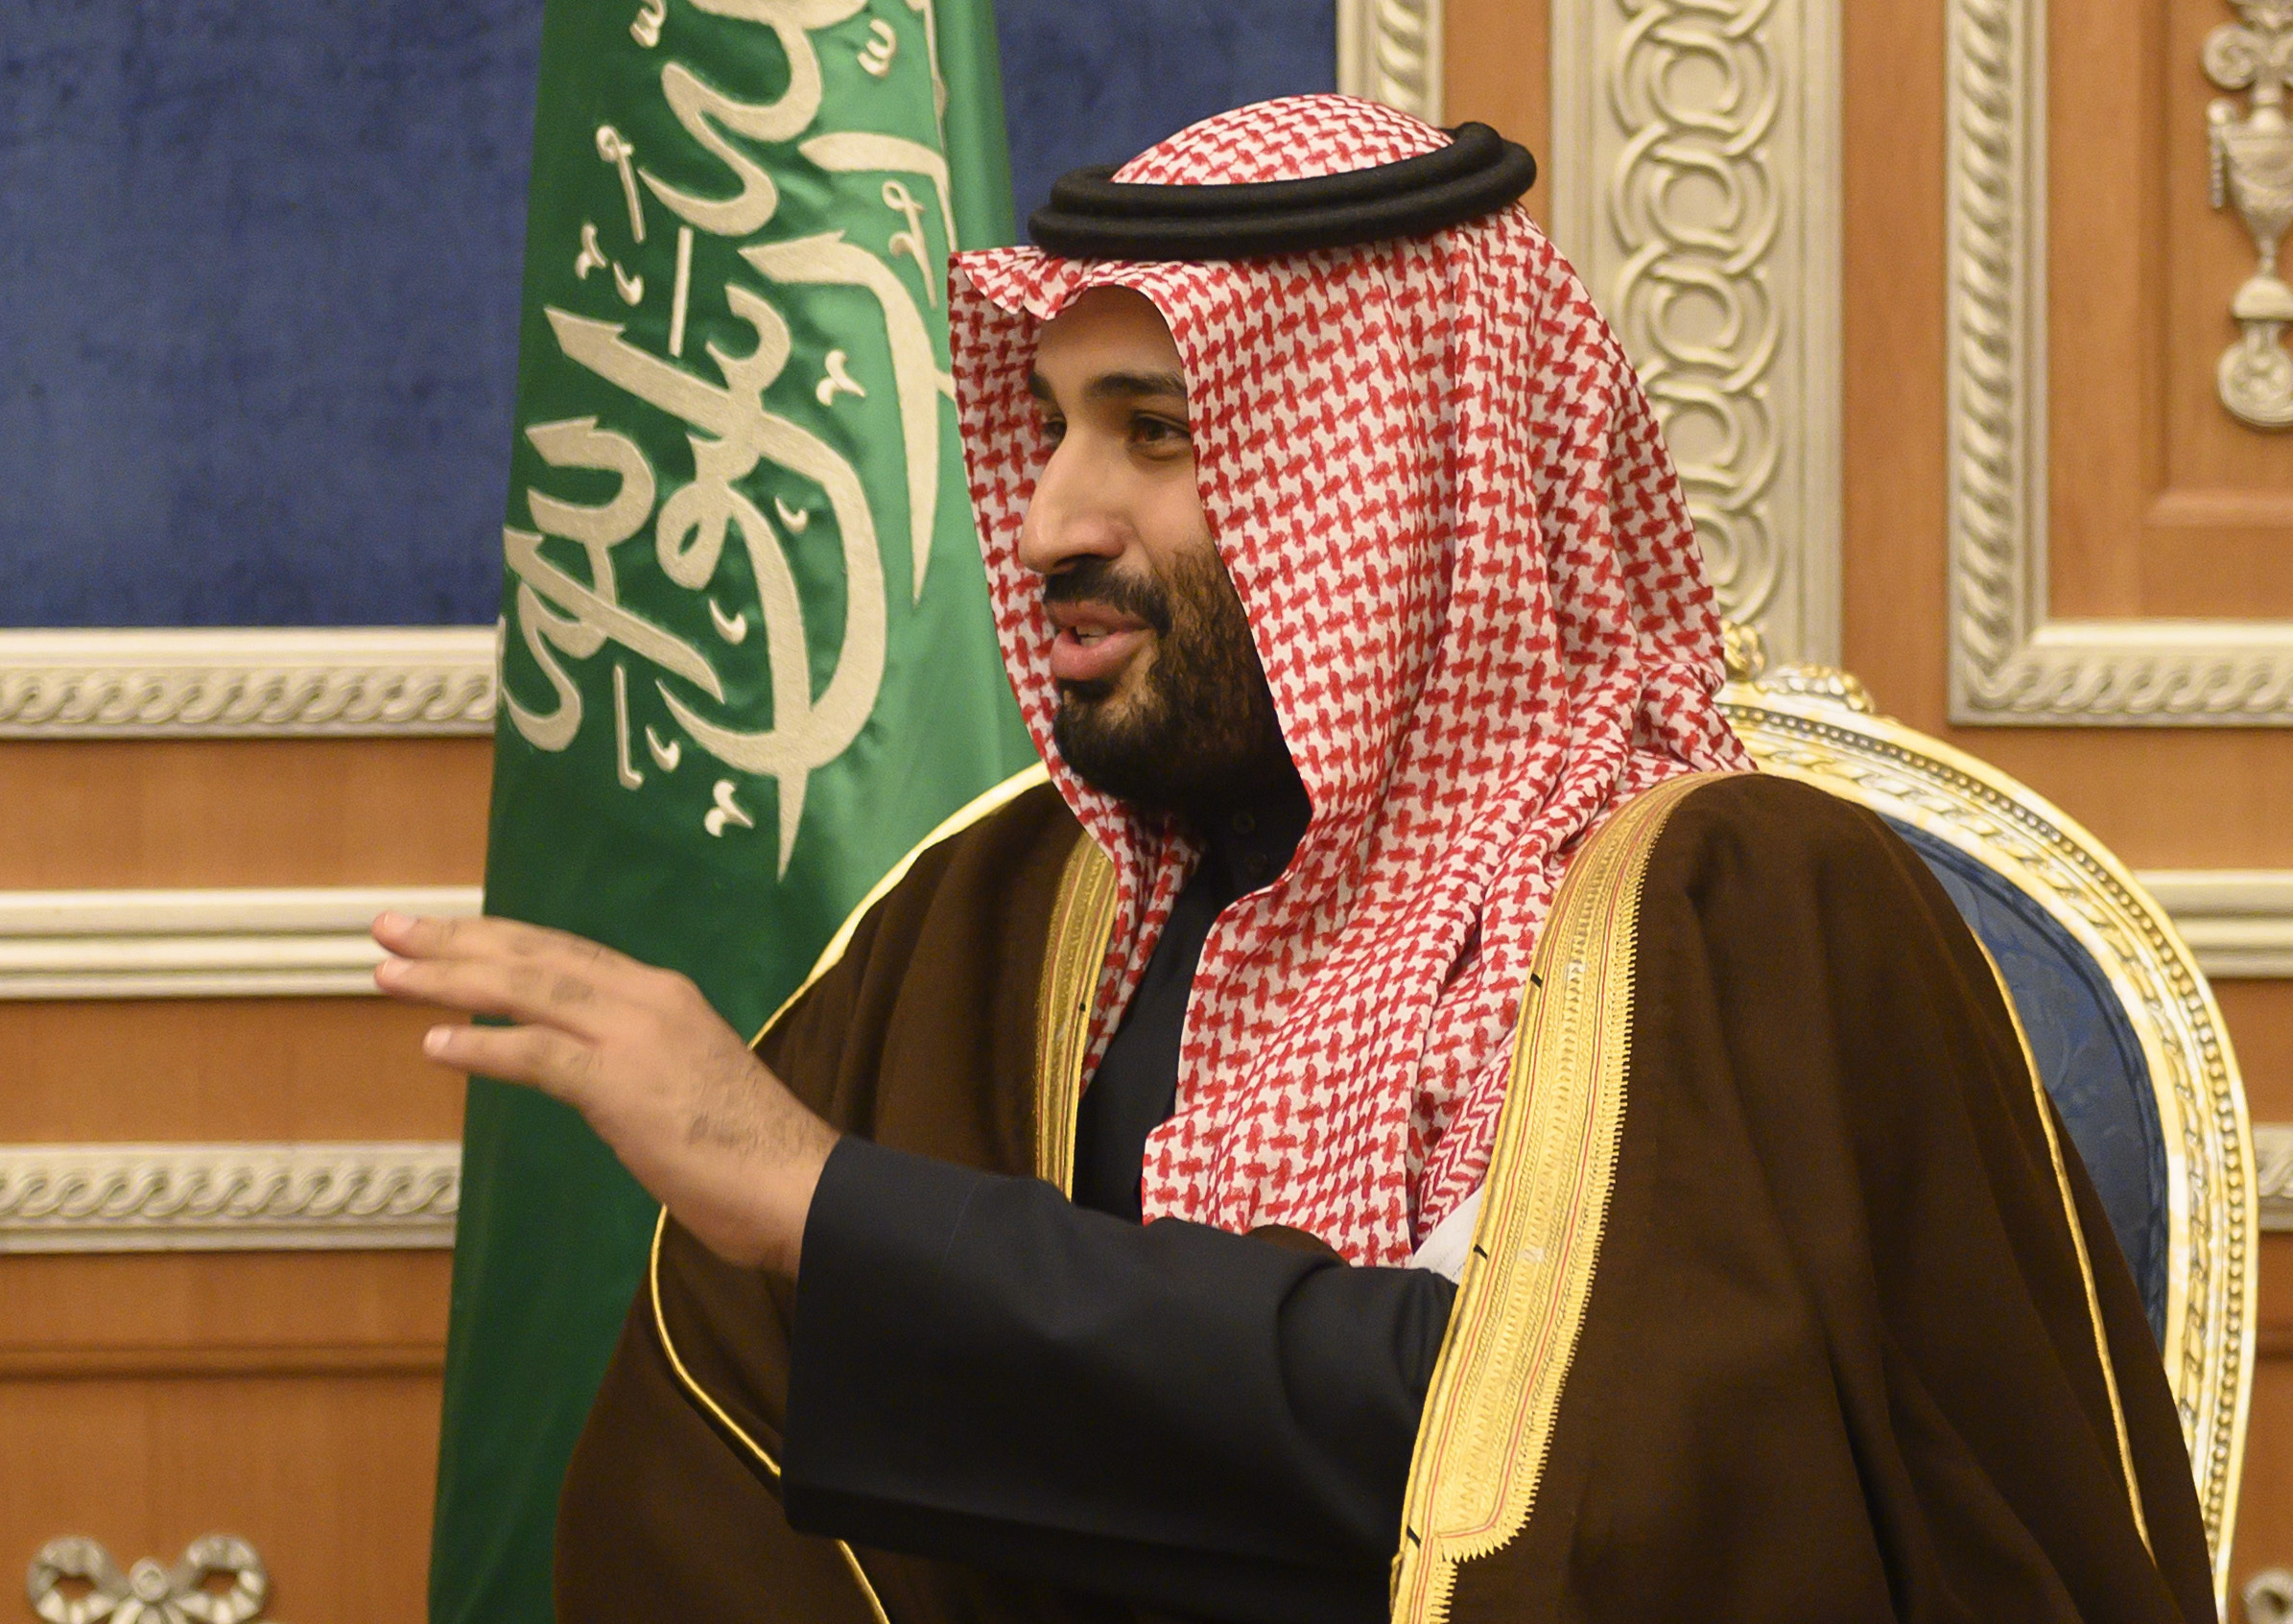 Trump Officials Tried To Rush Nuclear Technology To Saudis, House Panel Finds